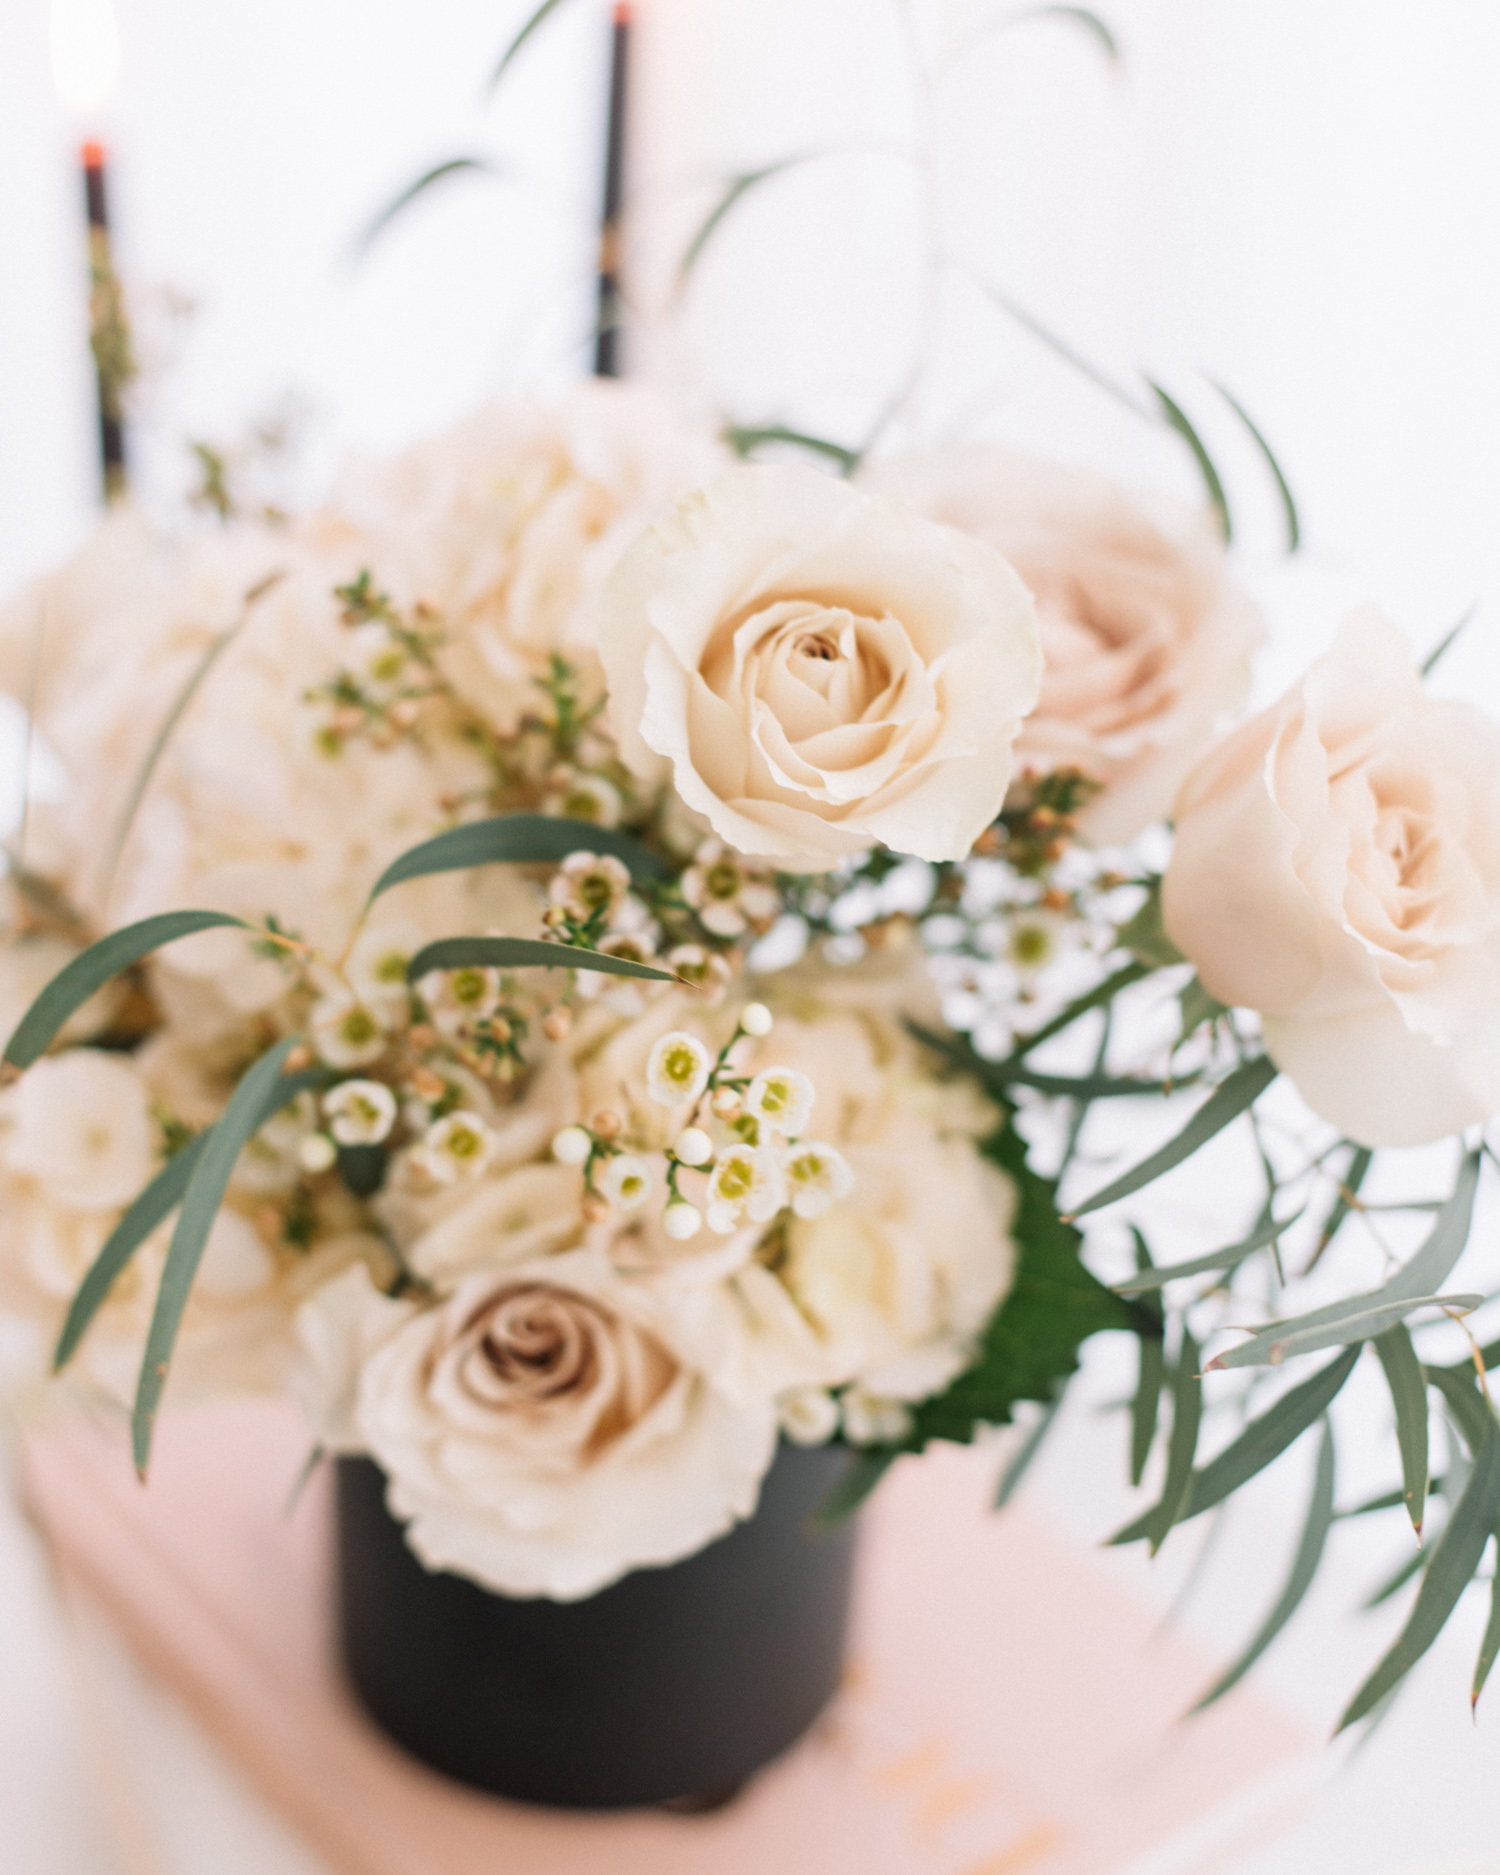 Simple Floral Arrangement for Girls' Night | A Fabulous Fete